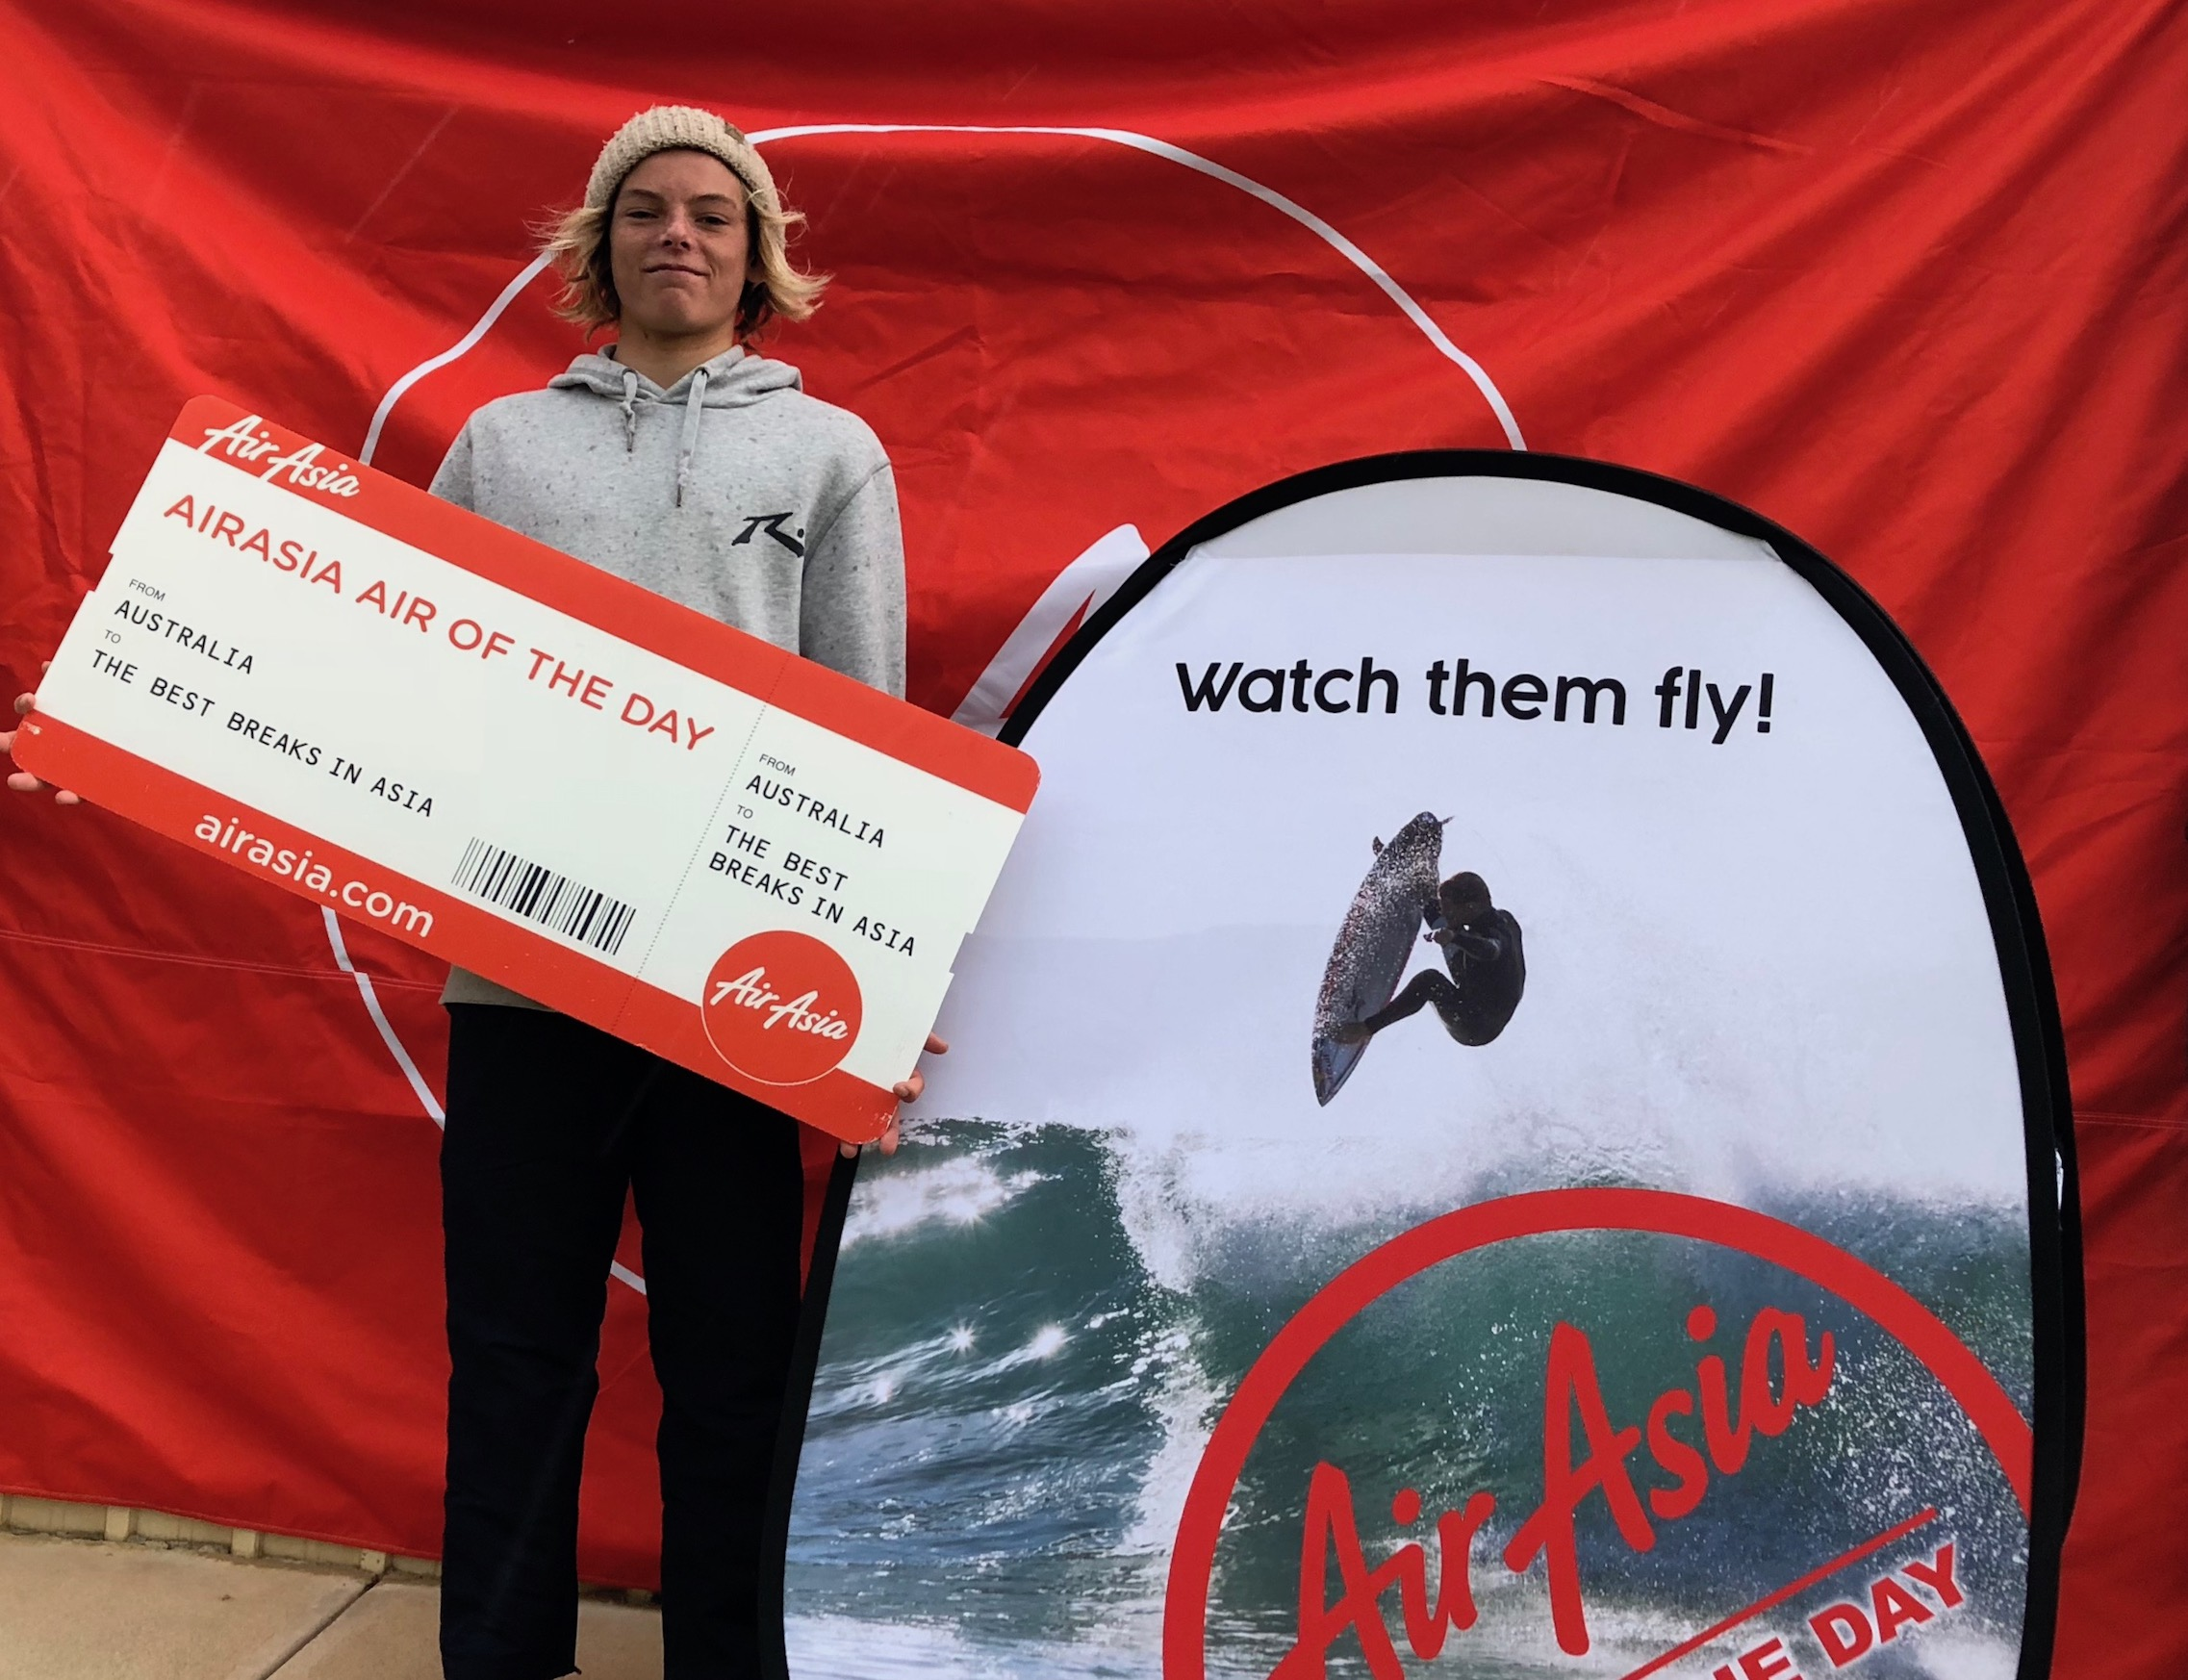 Digb Tooze Air of the Day and AirAsia Expressions Session Winner